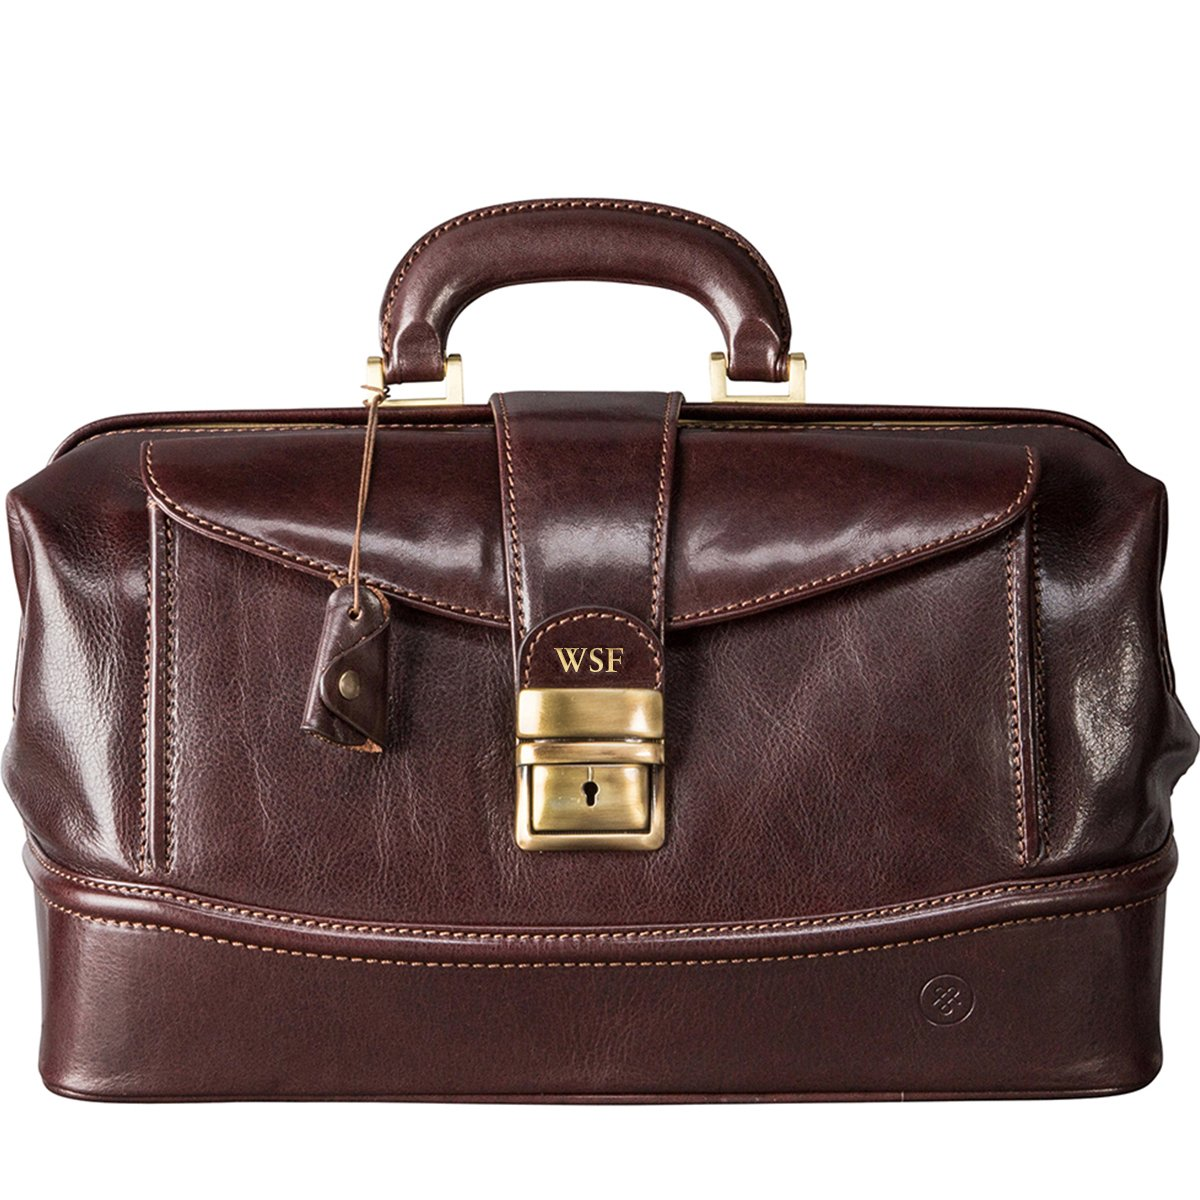 289fb301022e Maxwell Scott Personalized Full Grain Italian Leather Medical Bag -  DonniniS Brown